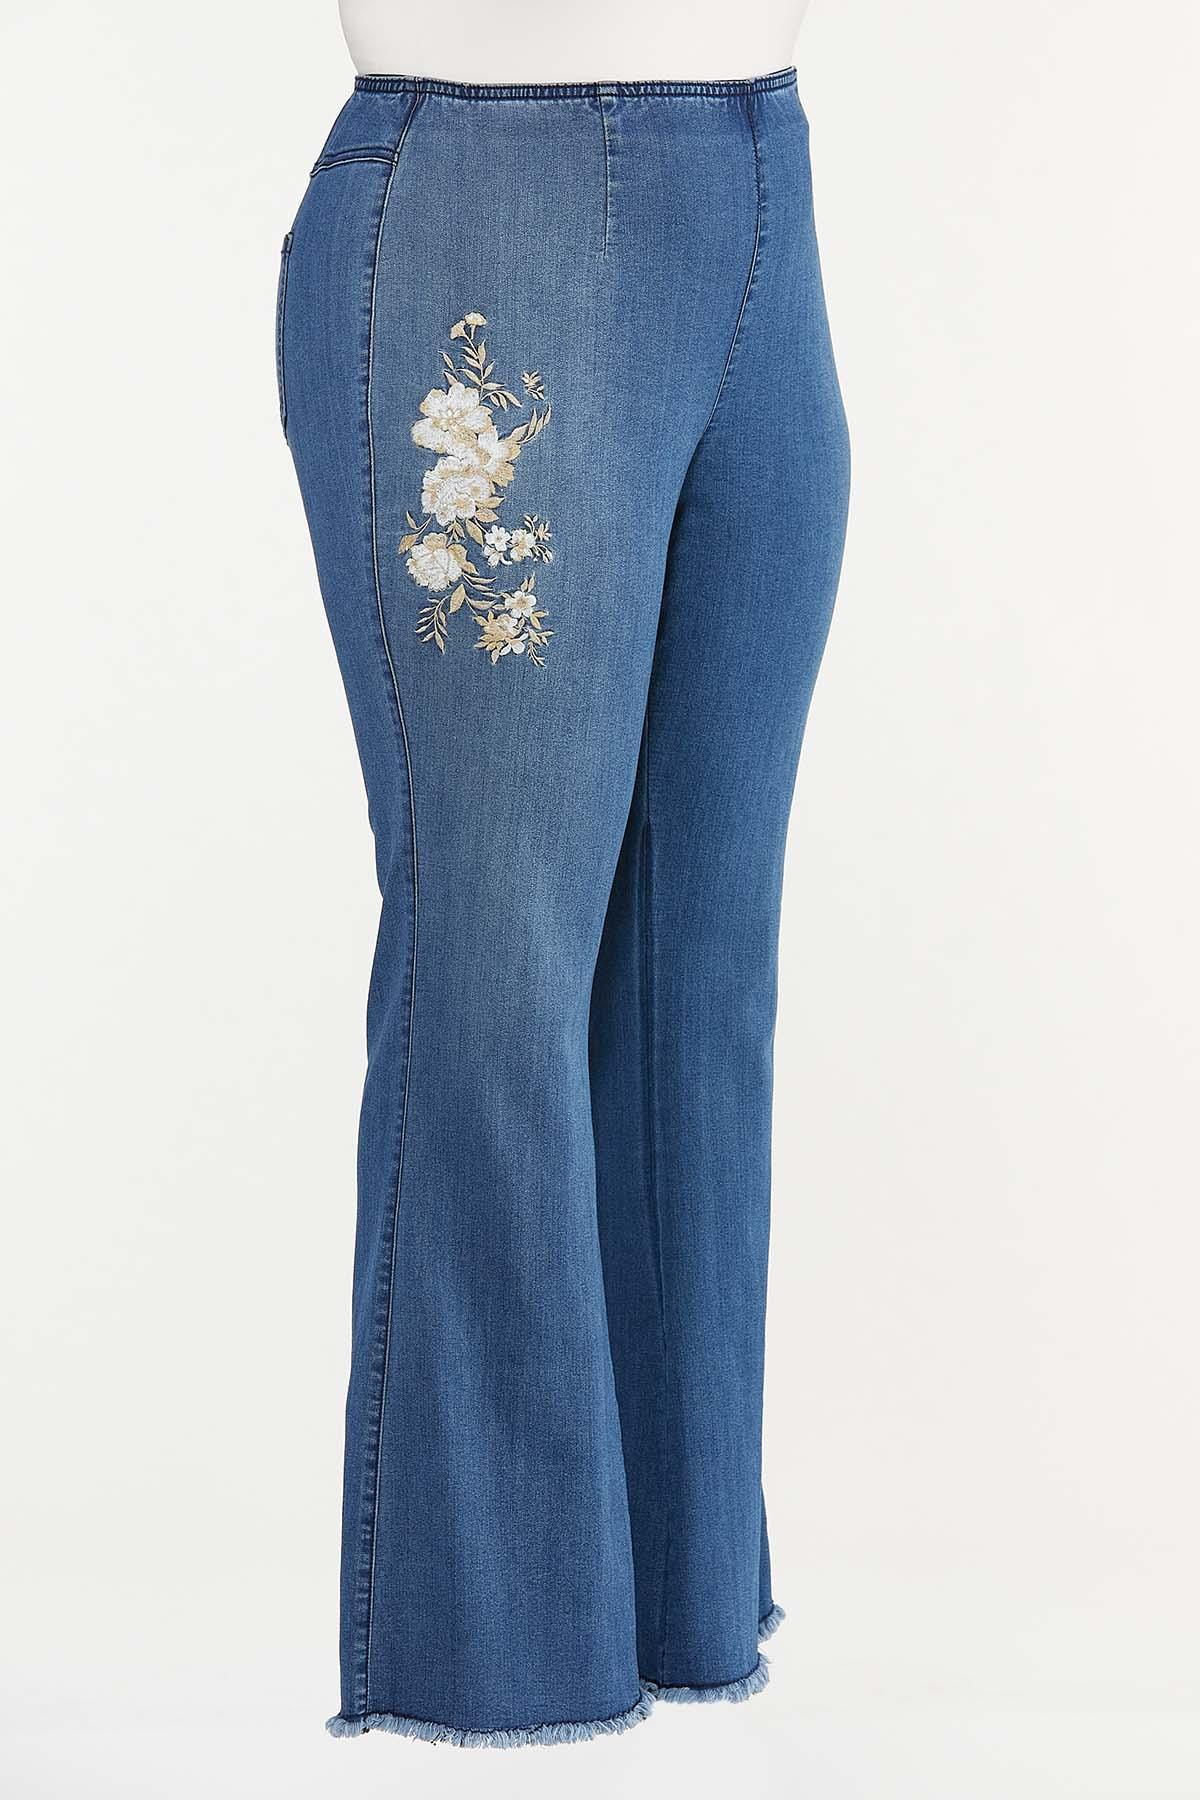 Plus Size Floral Embroidered Flare Jeans (Item #44665035)